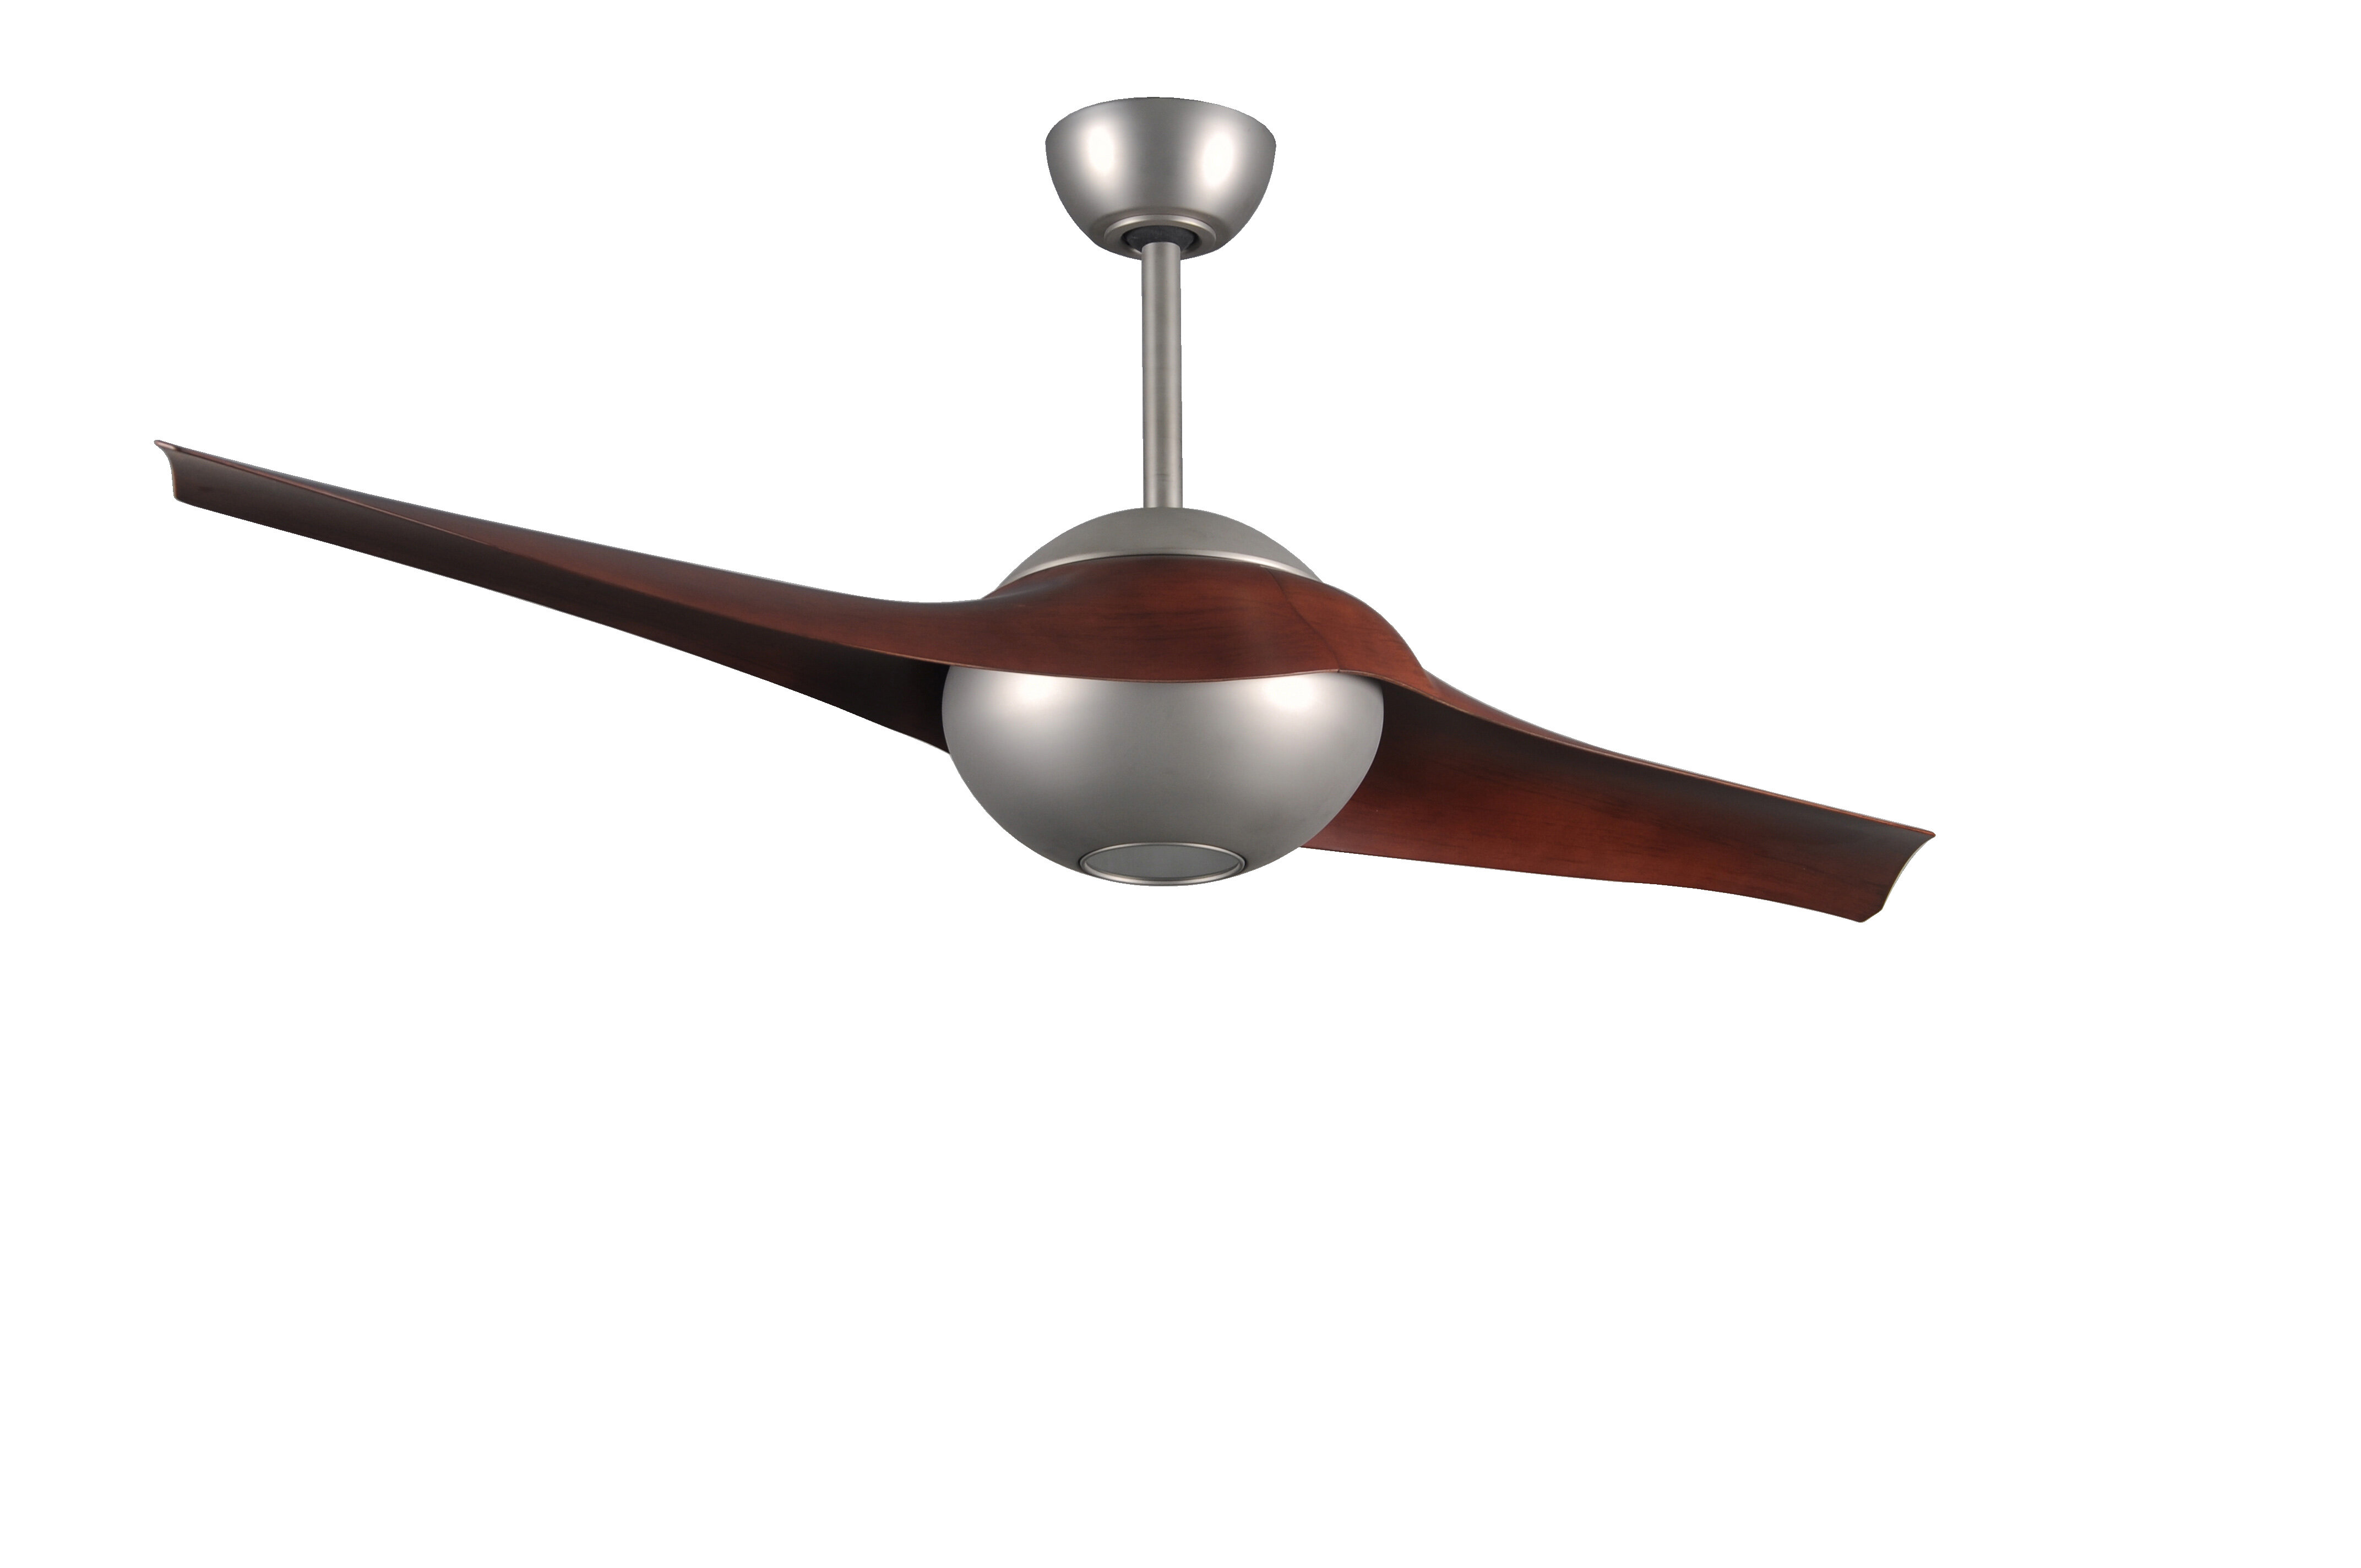 blade flat brand bnd name ceiling with led c matthews fan remote iv default company wayfair